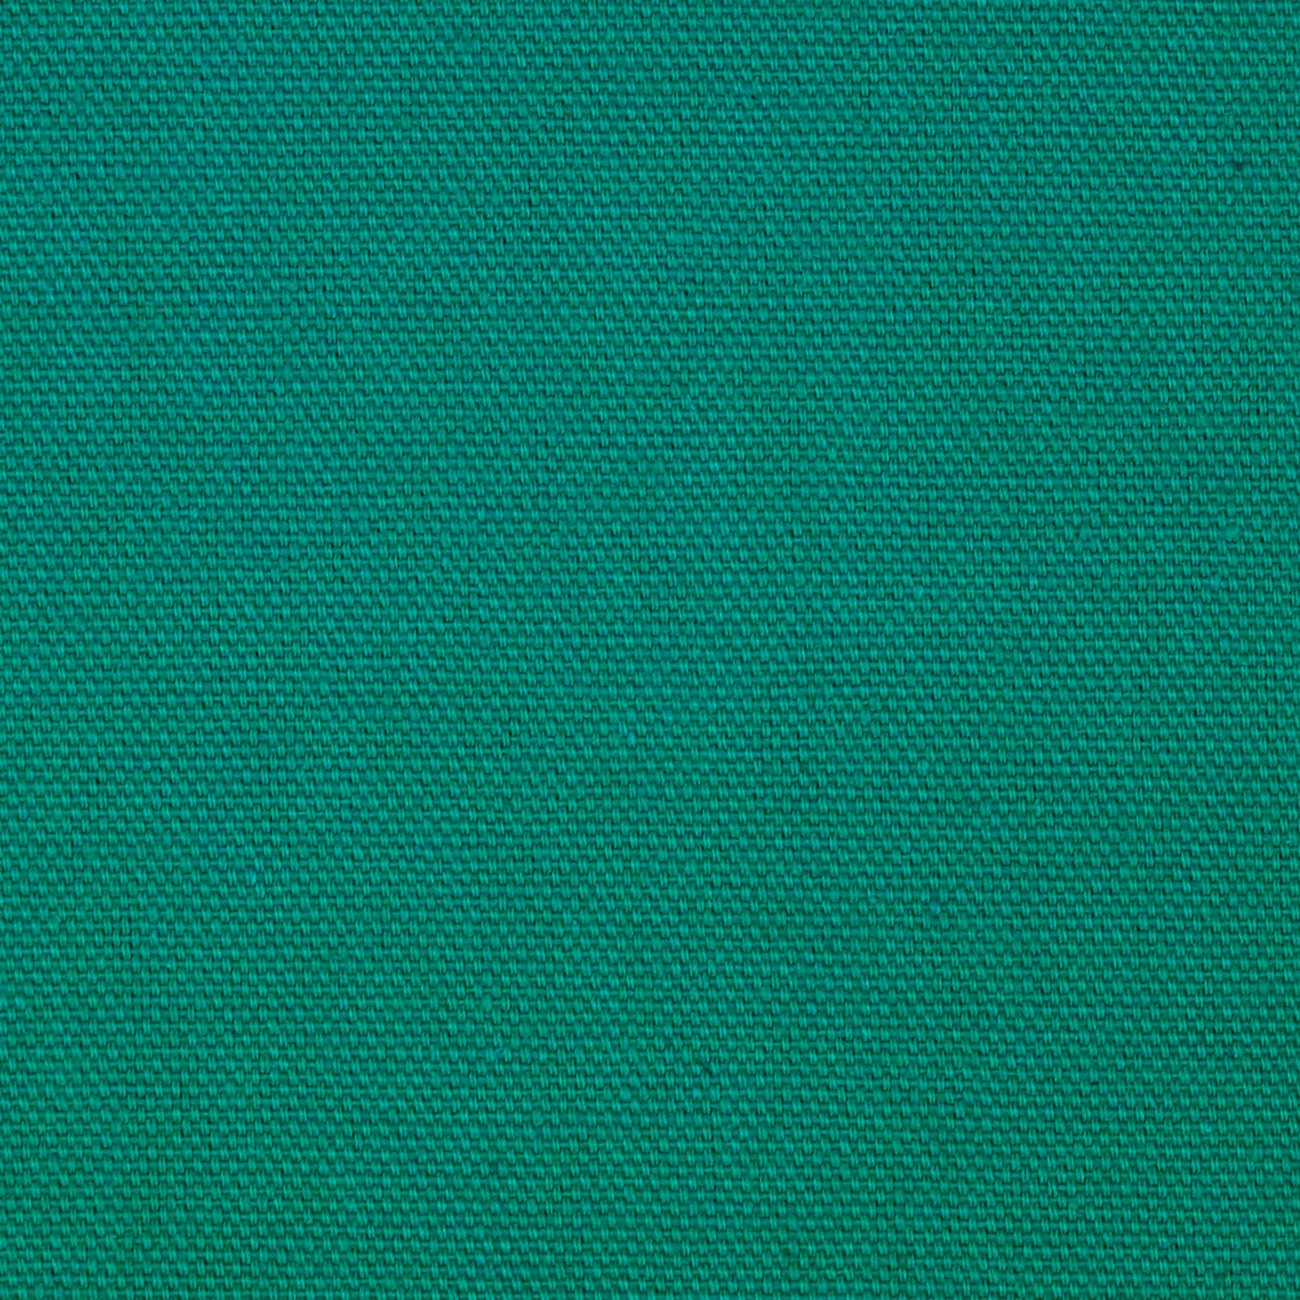 JT- Dyed Canvas Emerald